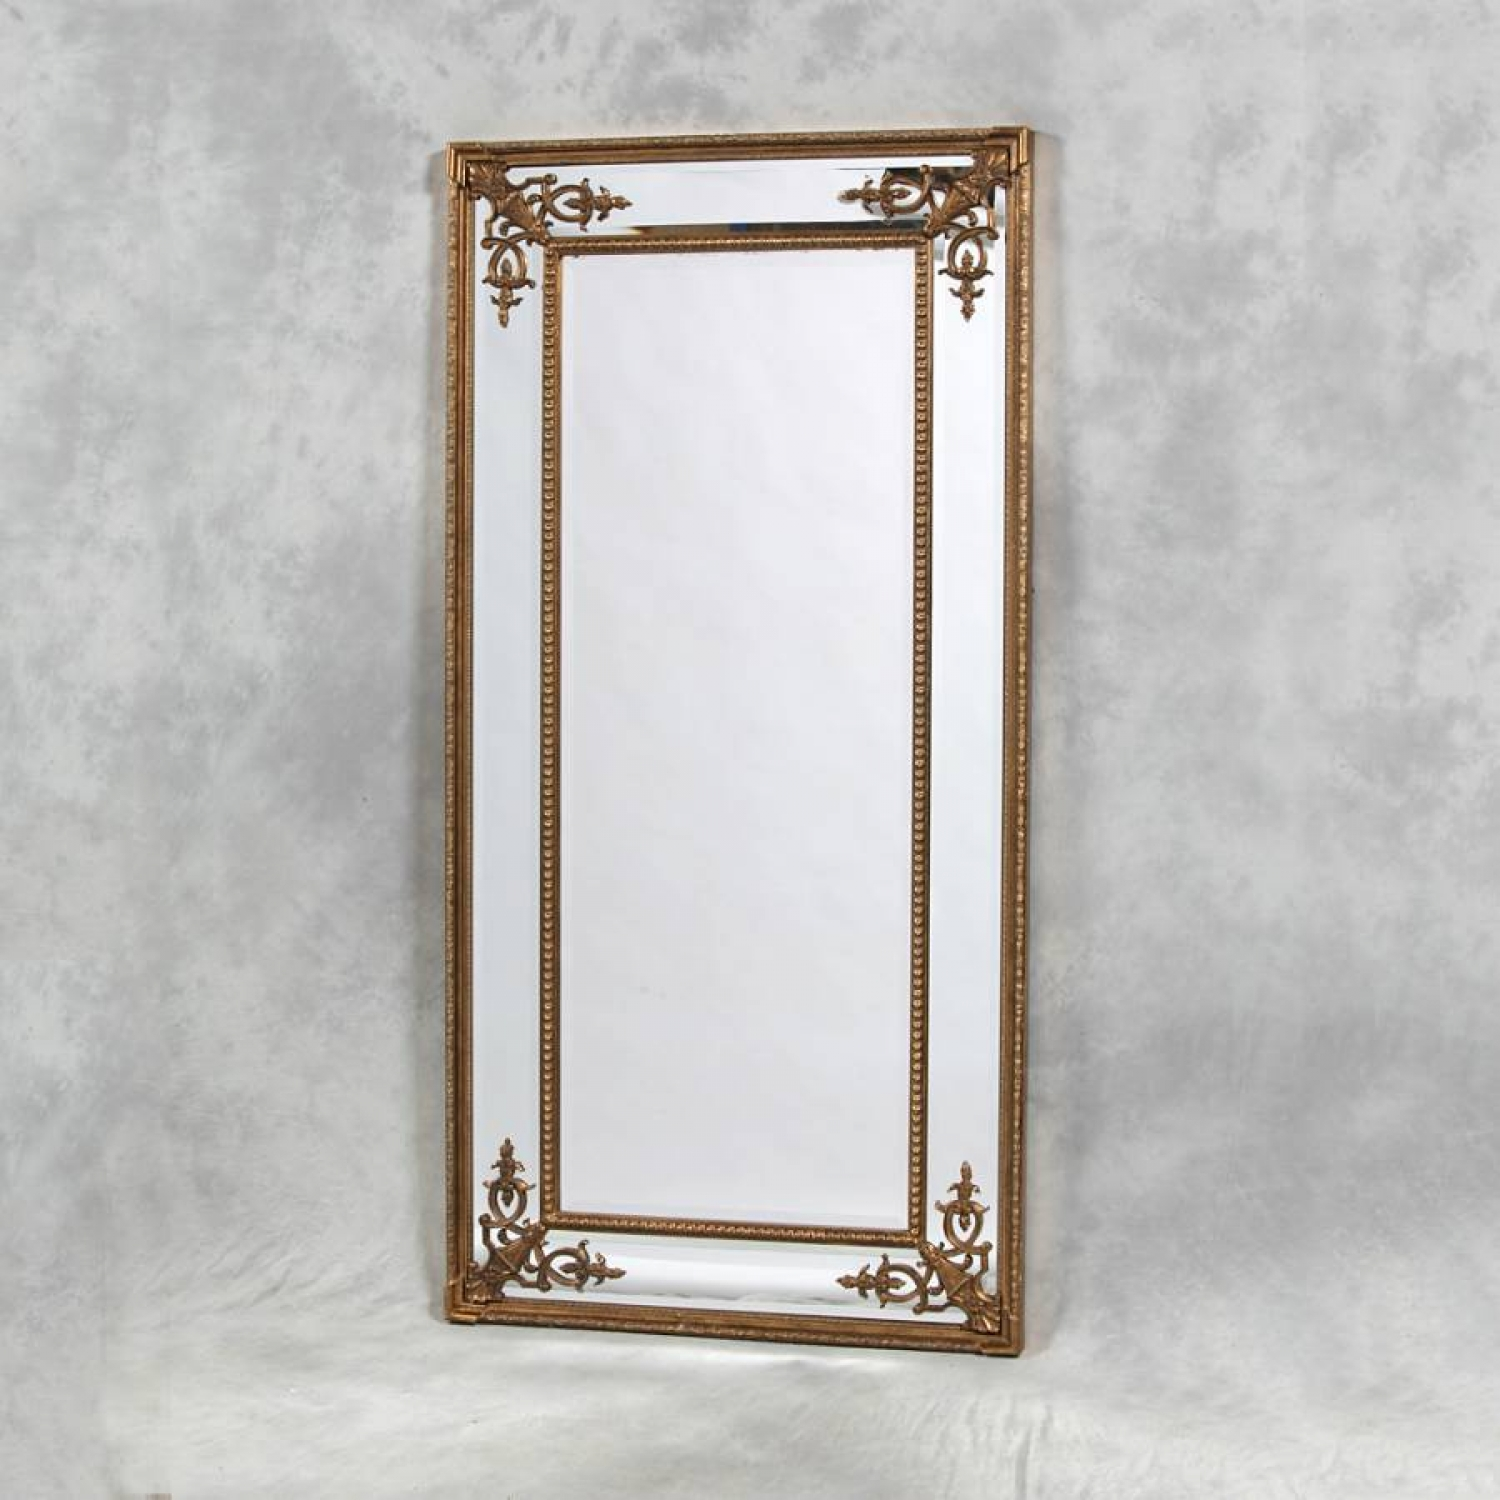 French style ornate gold mirror